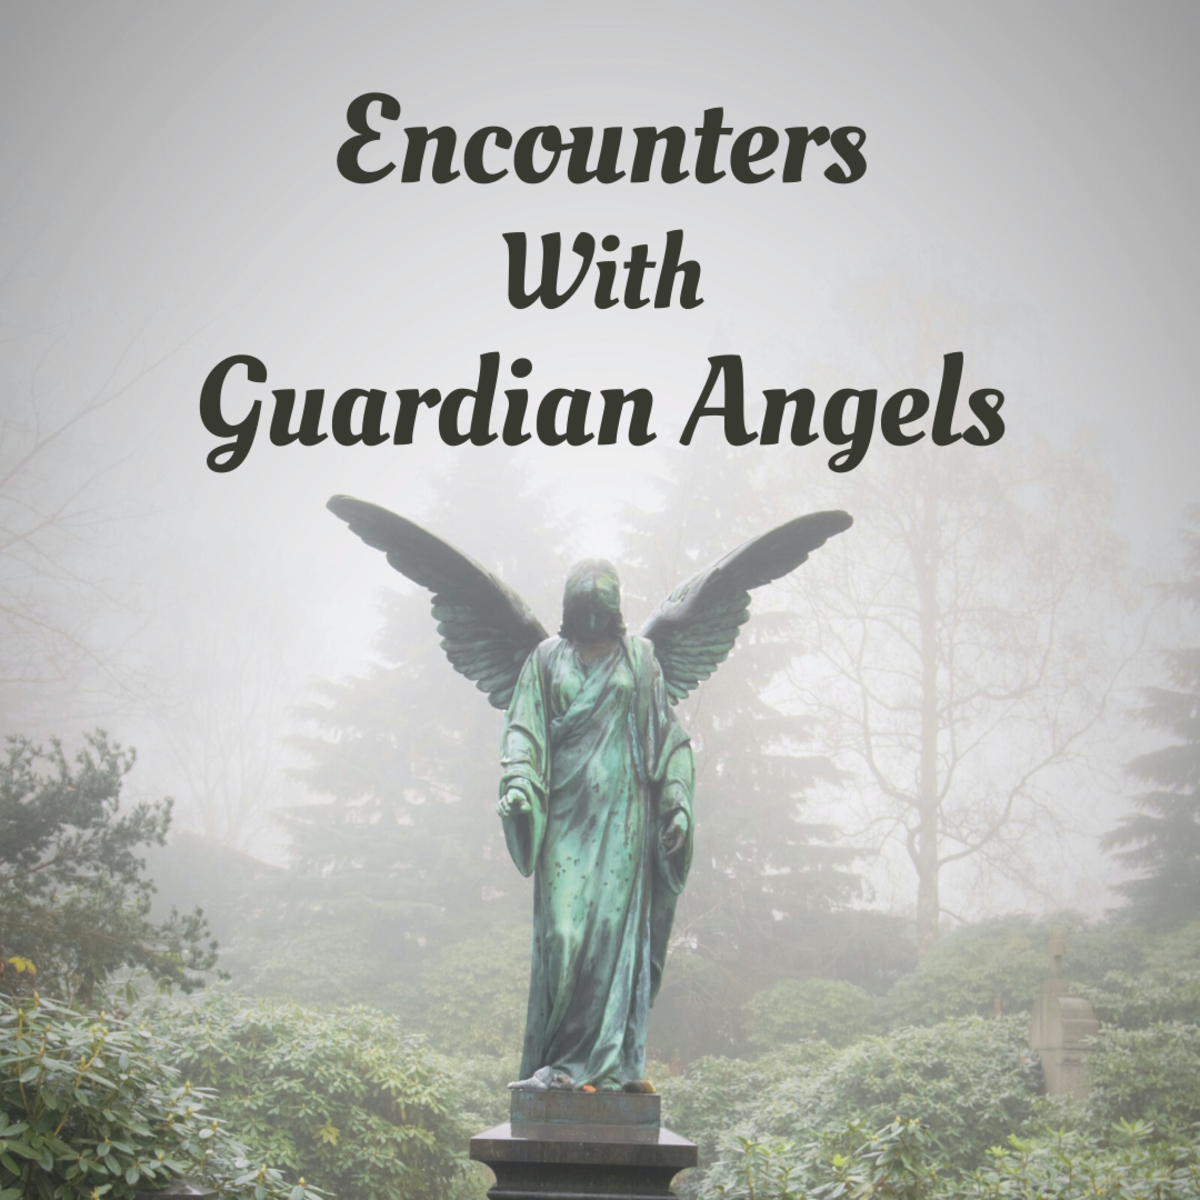 Are guardian angels real or a fantasy? Read four stories of encounters with these heavenly protectors and decide for yourself.